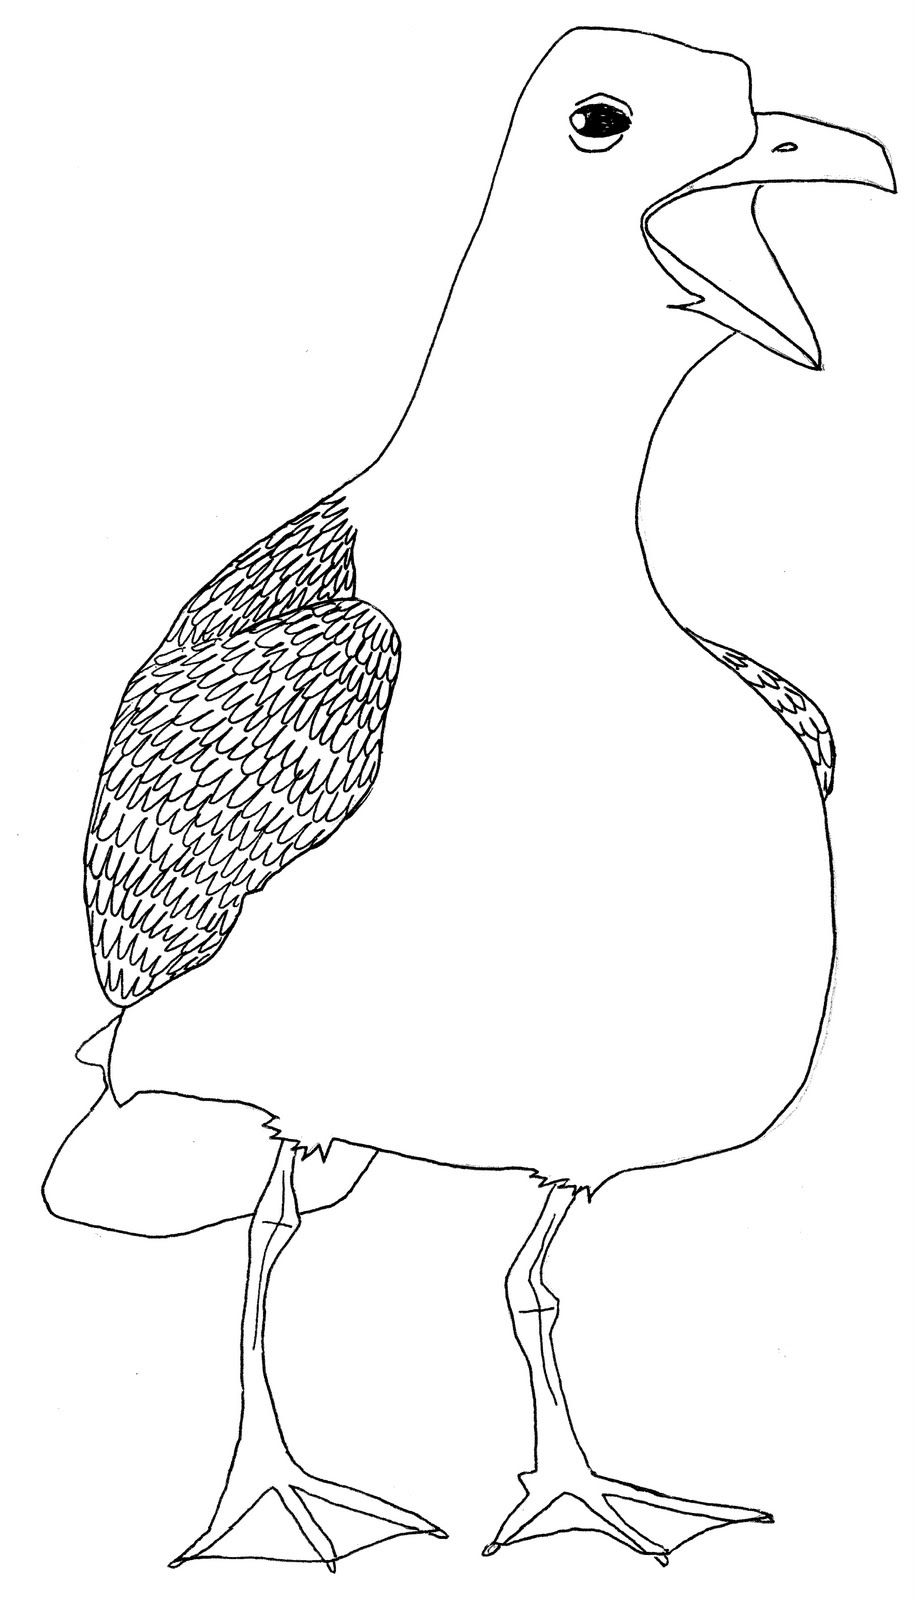 how to draw a seagull seagulls drawing at getdrawings free download seagull to a draw how